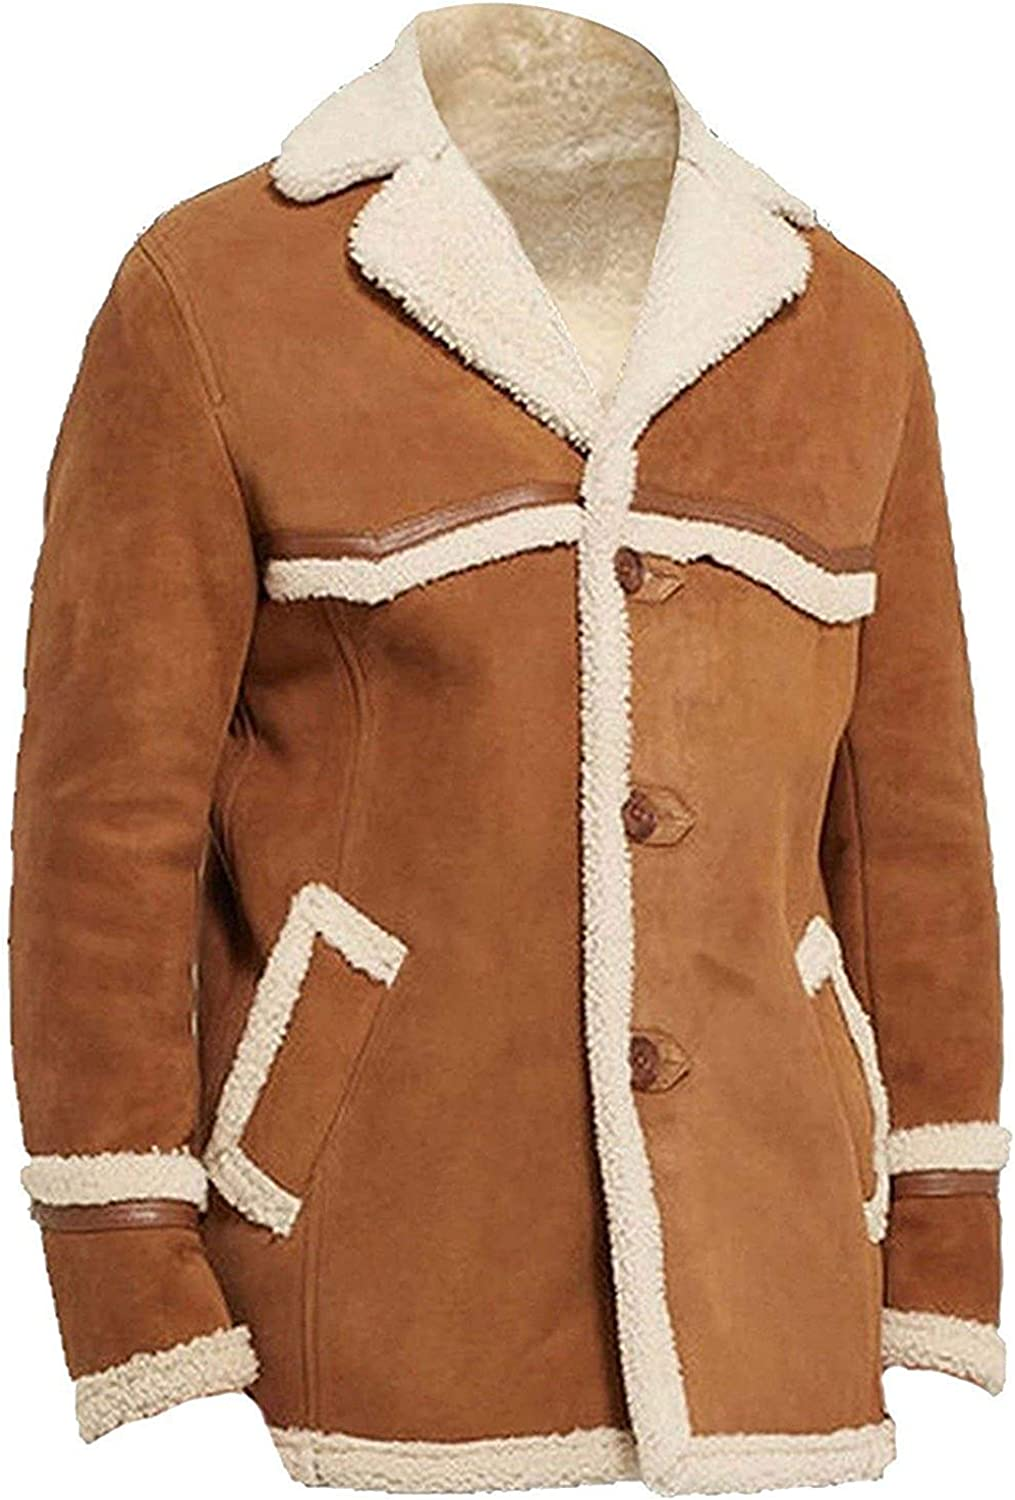 Kingsman The Golden Circle Harry Hart Colin Firth Fur Shearling Brown Suede Leather Coat